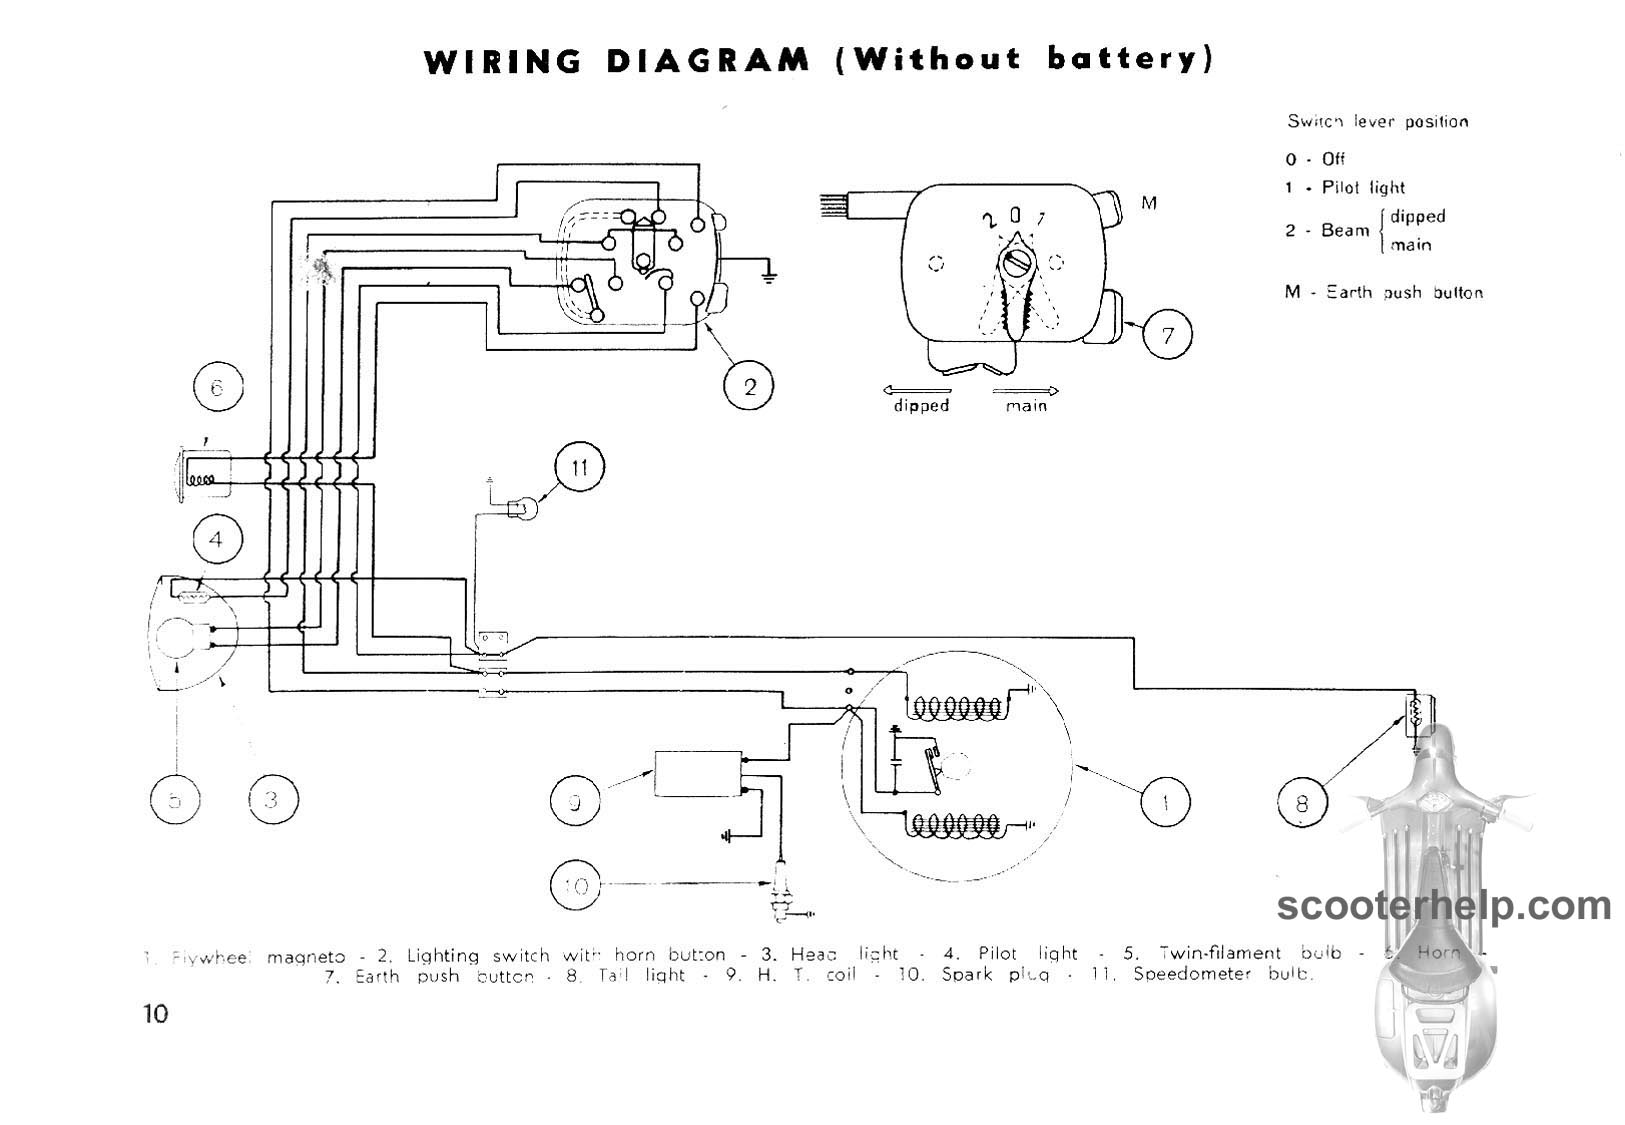 page10 lambretta 150 ld owner's manual lambretta series 2 wiring diagram at crackthecode.co